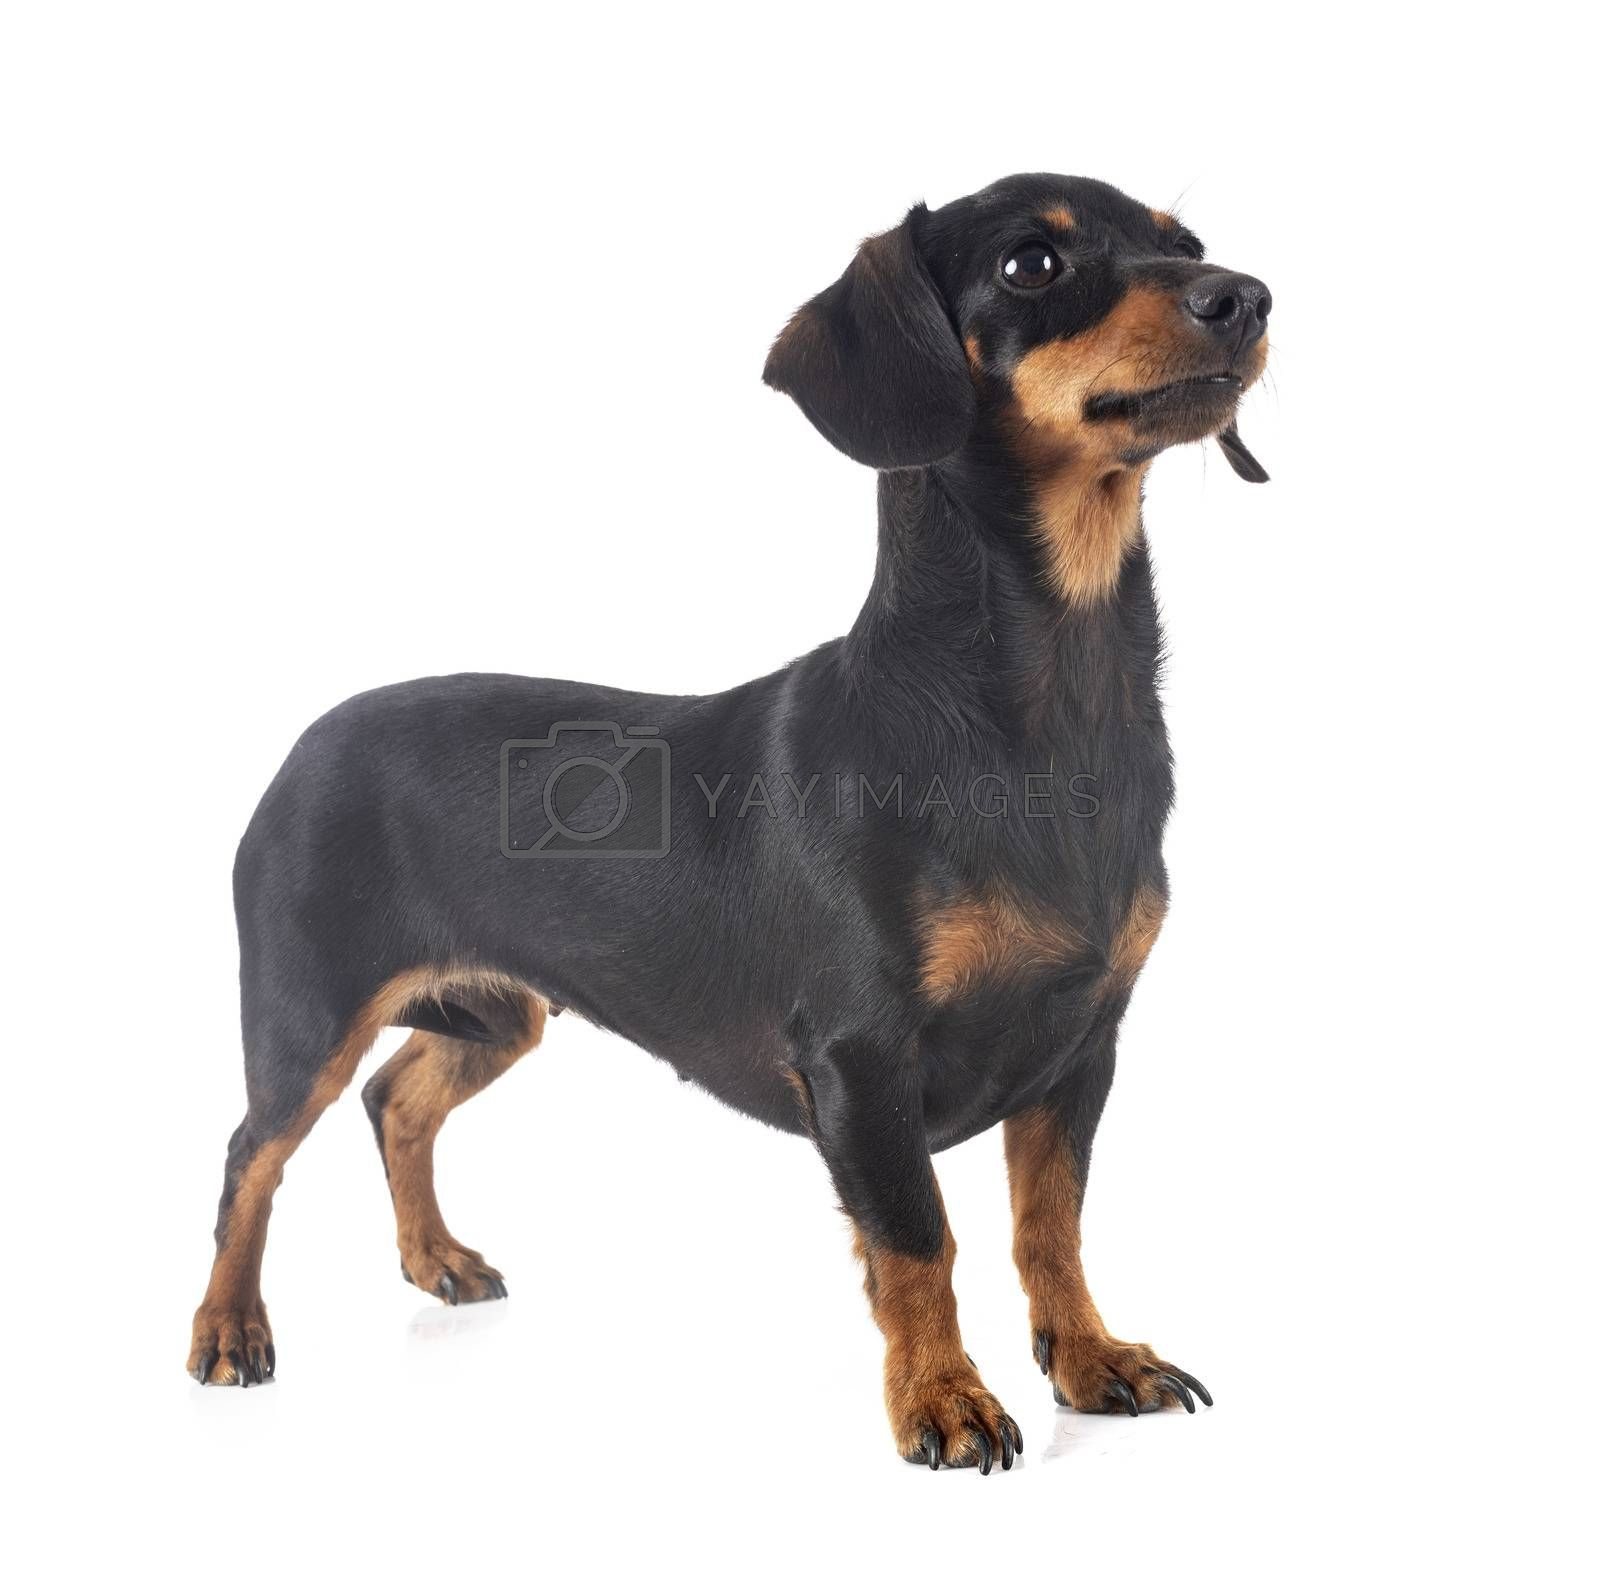 black and tan Dachshund in front of white background